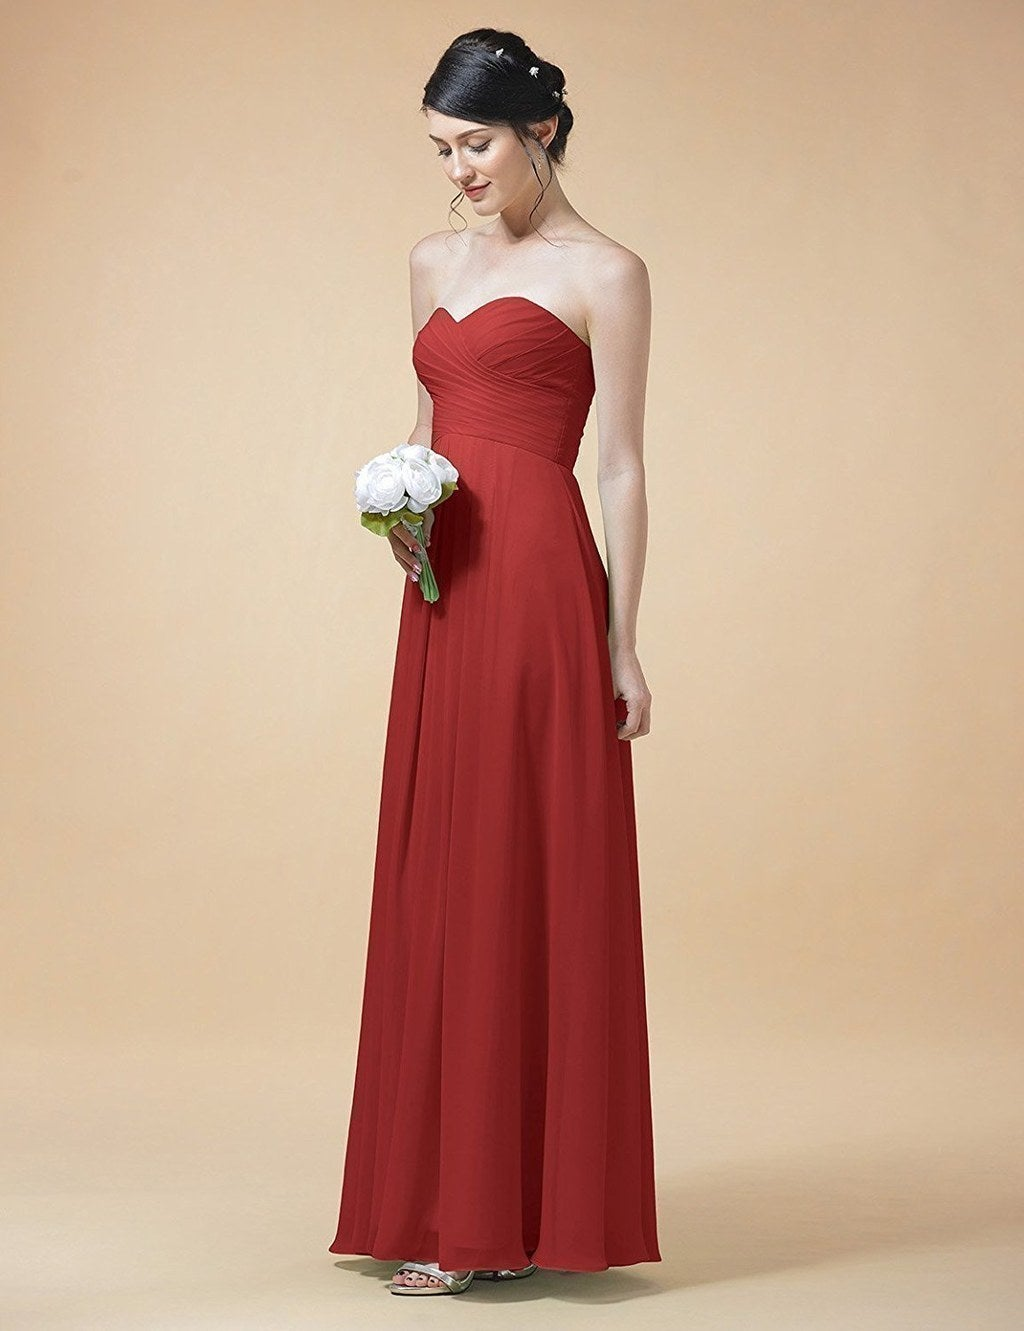 20 bridesmaid dresses you can get on amazon that your friends will a strapless number with a corset back meaning you wont be hoisting up your cleavage every five seconds hooray ombrellifo Image collections